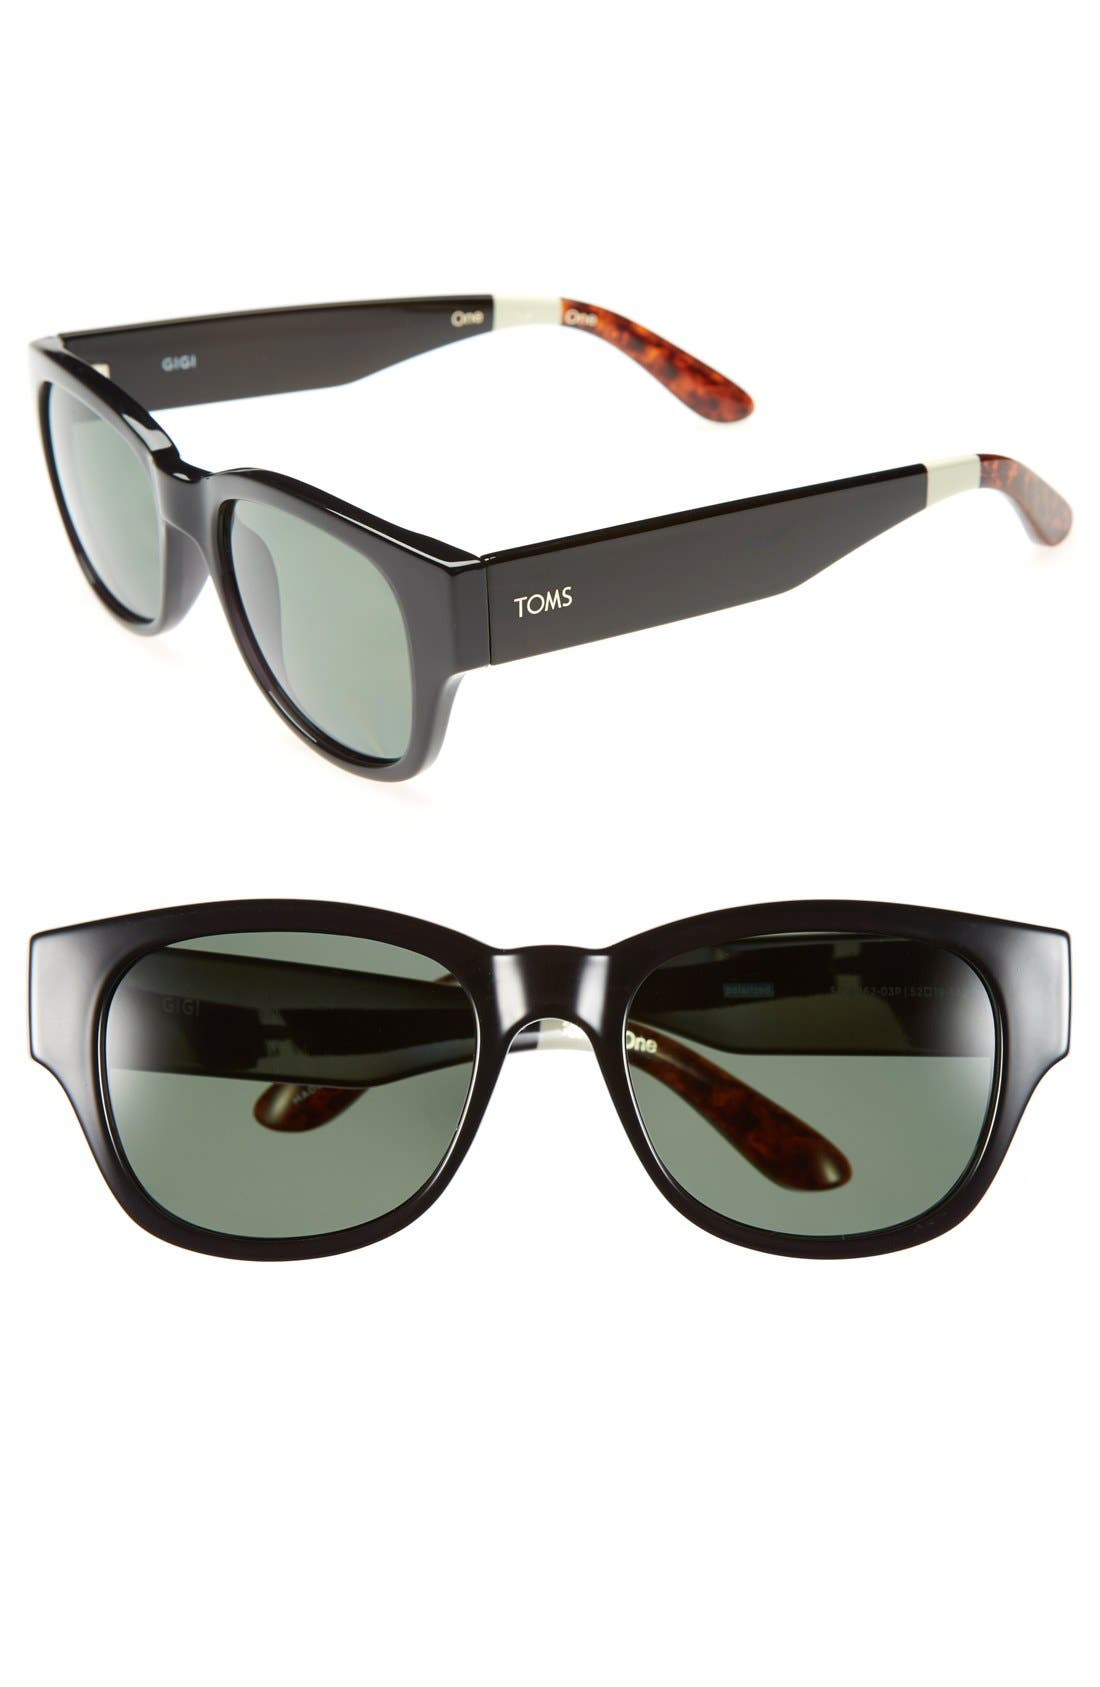 Main Image - TOMS 'Gigi' 52mm Polarized Sunglasses